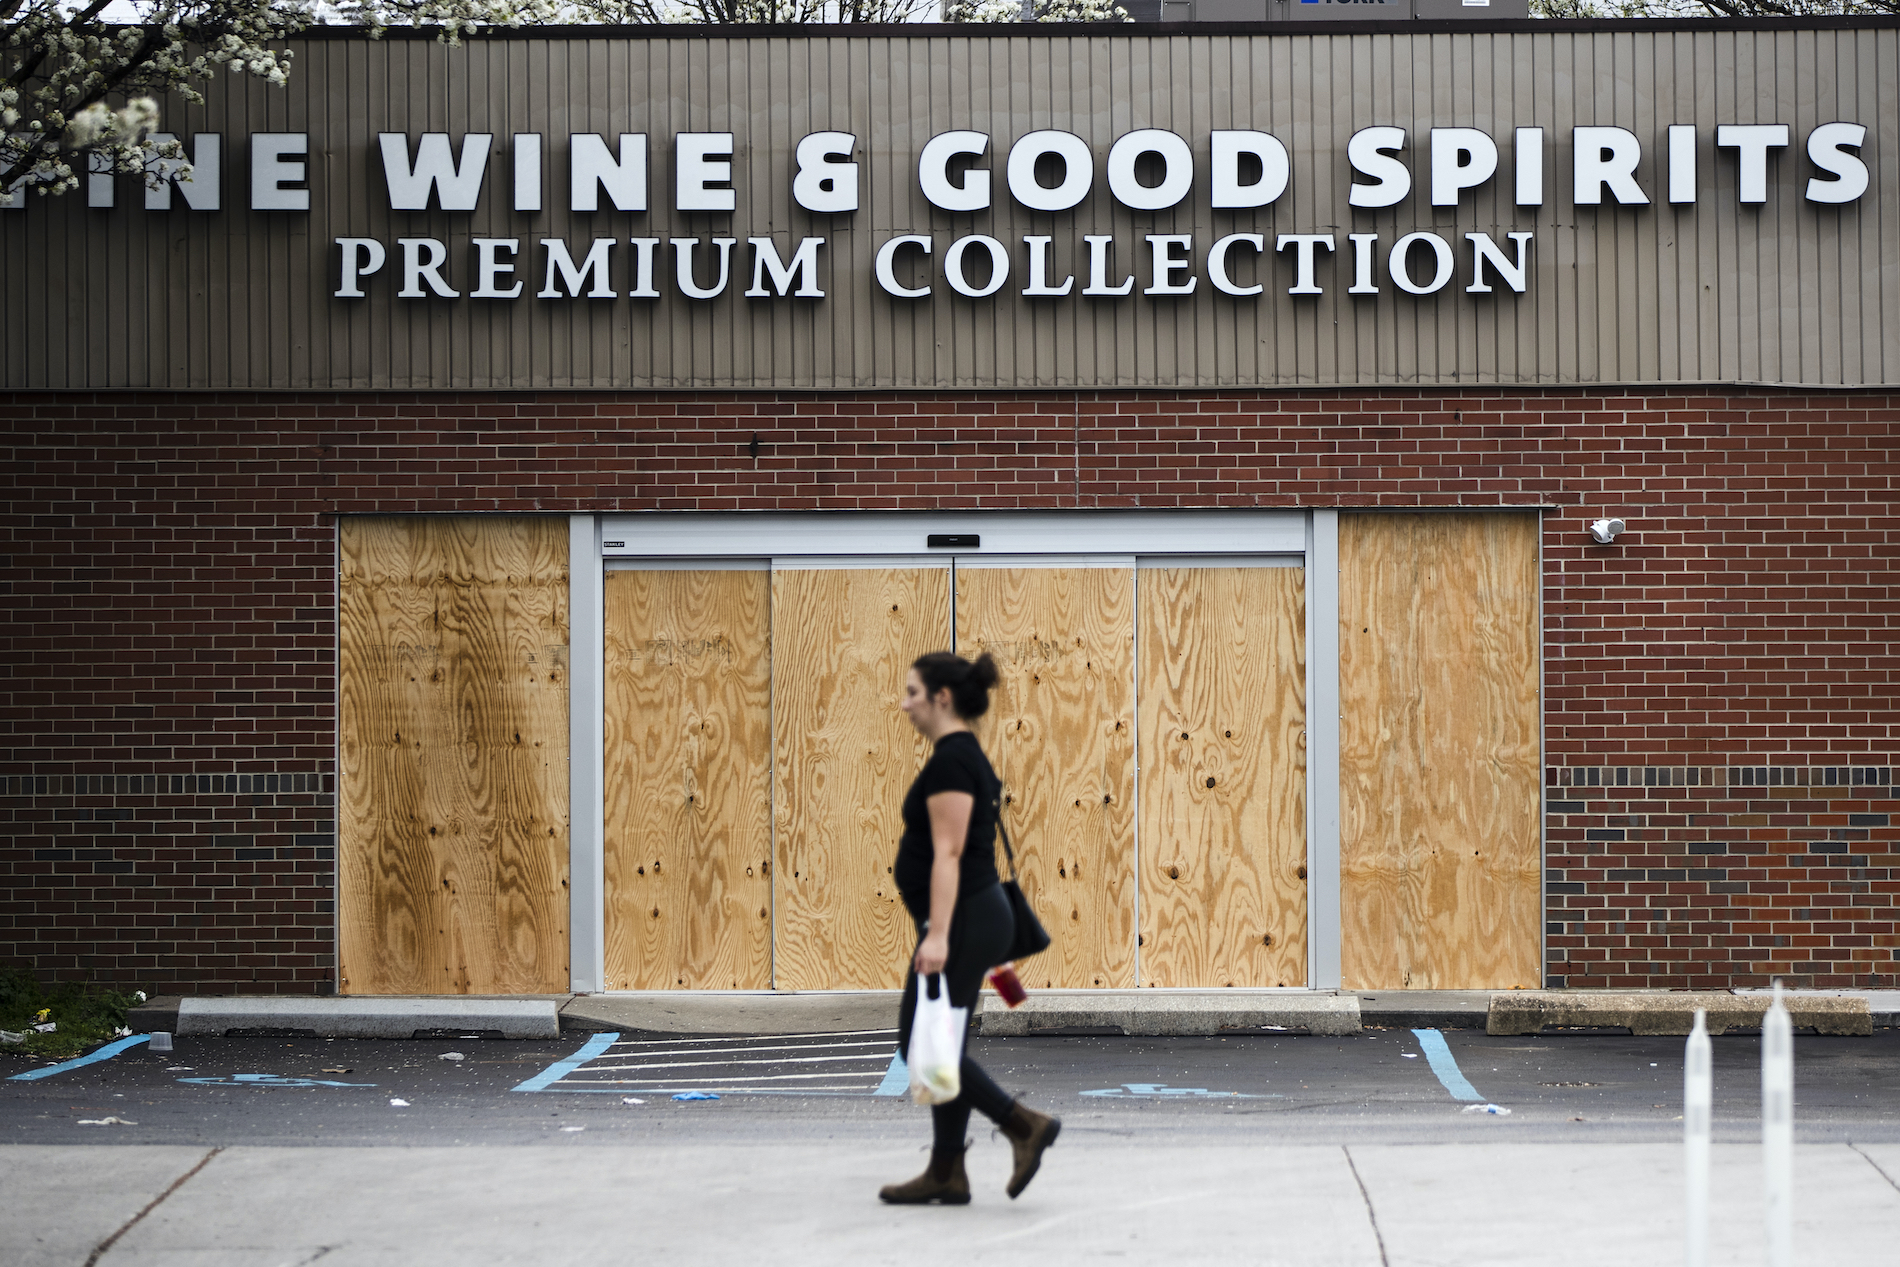 More Fine Wine Good Spirits Stores To Open Across Philly Region Whyy